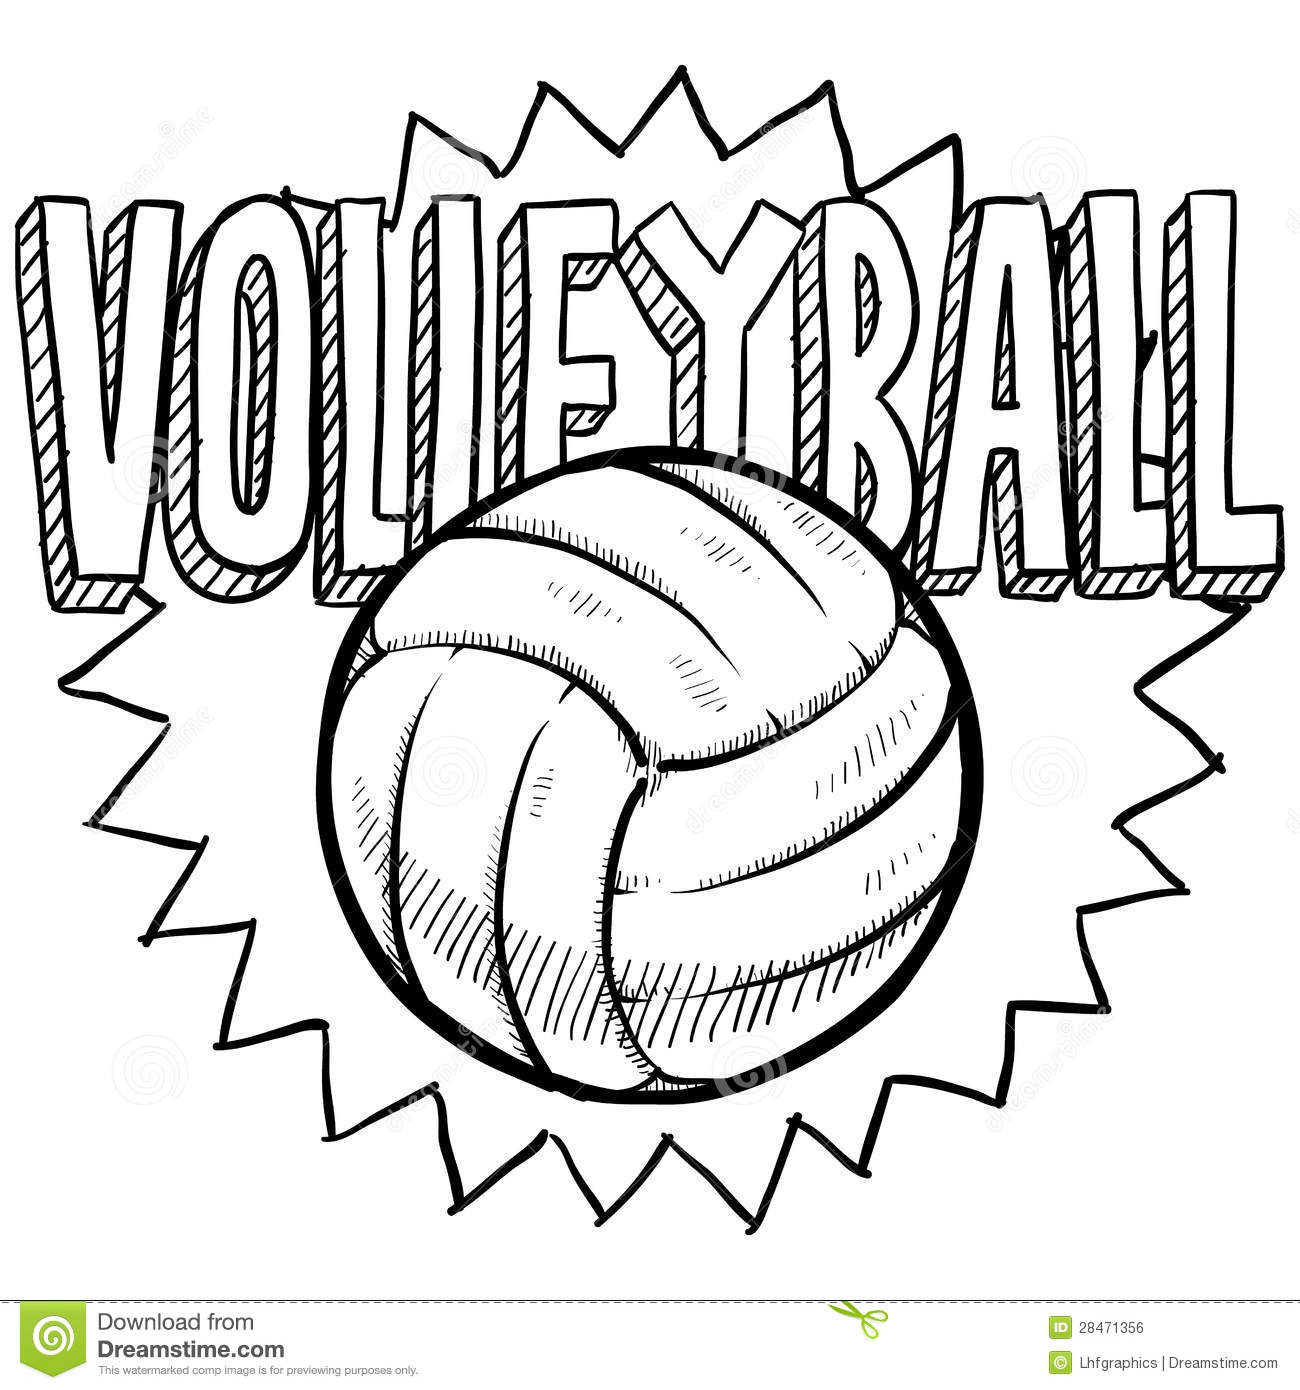 Volleyball Sketch Stock Vector Illustration Of Kids